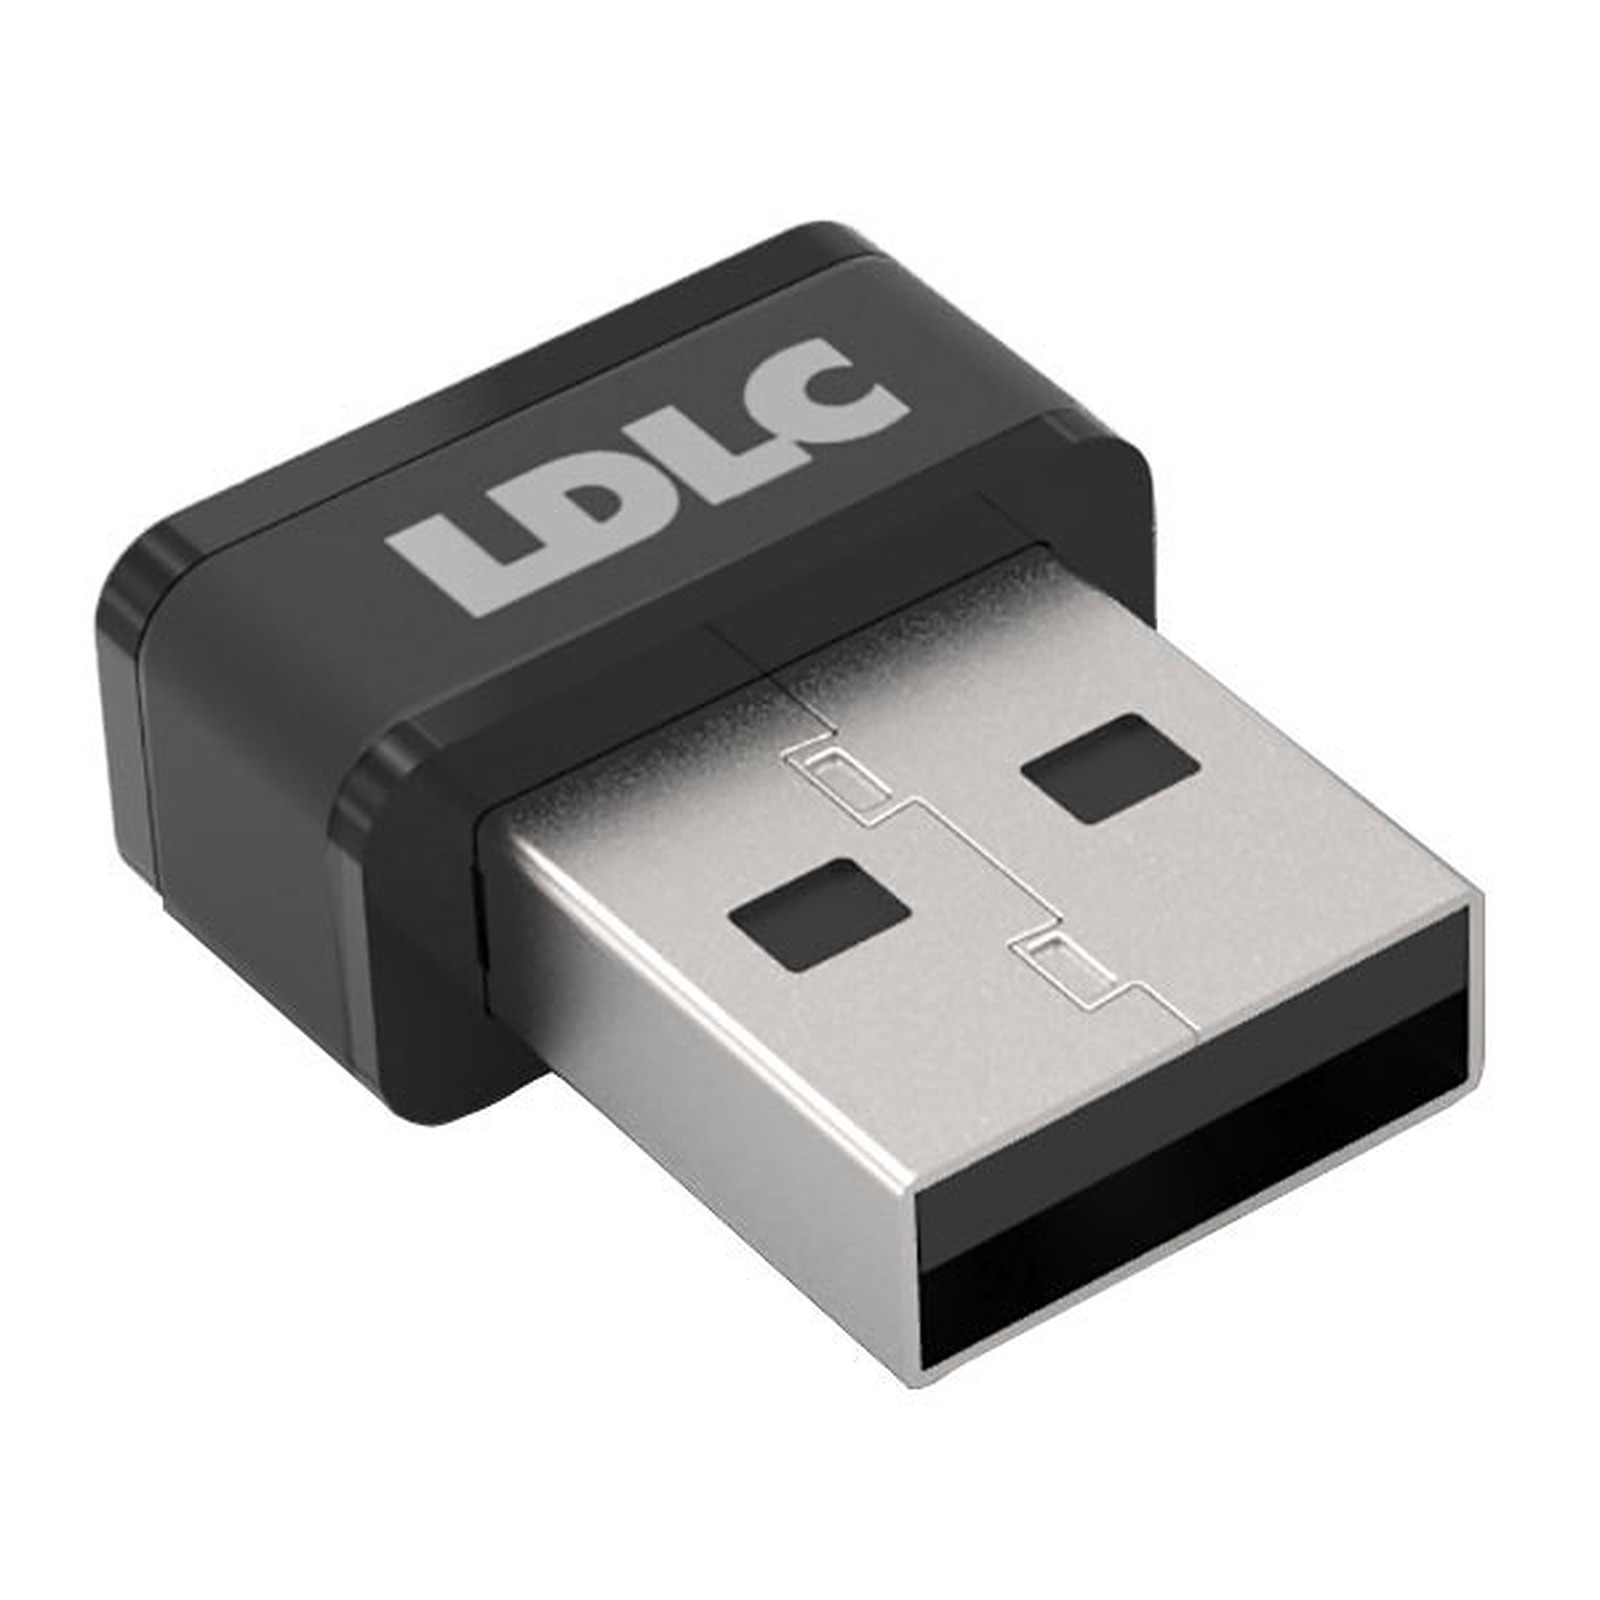 LDLC Finger Key